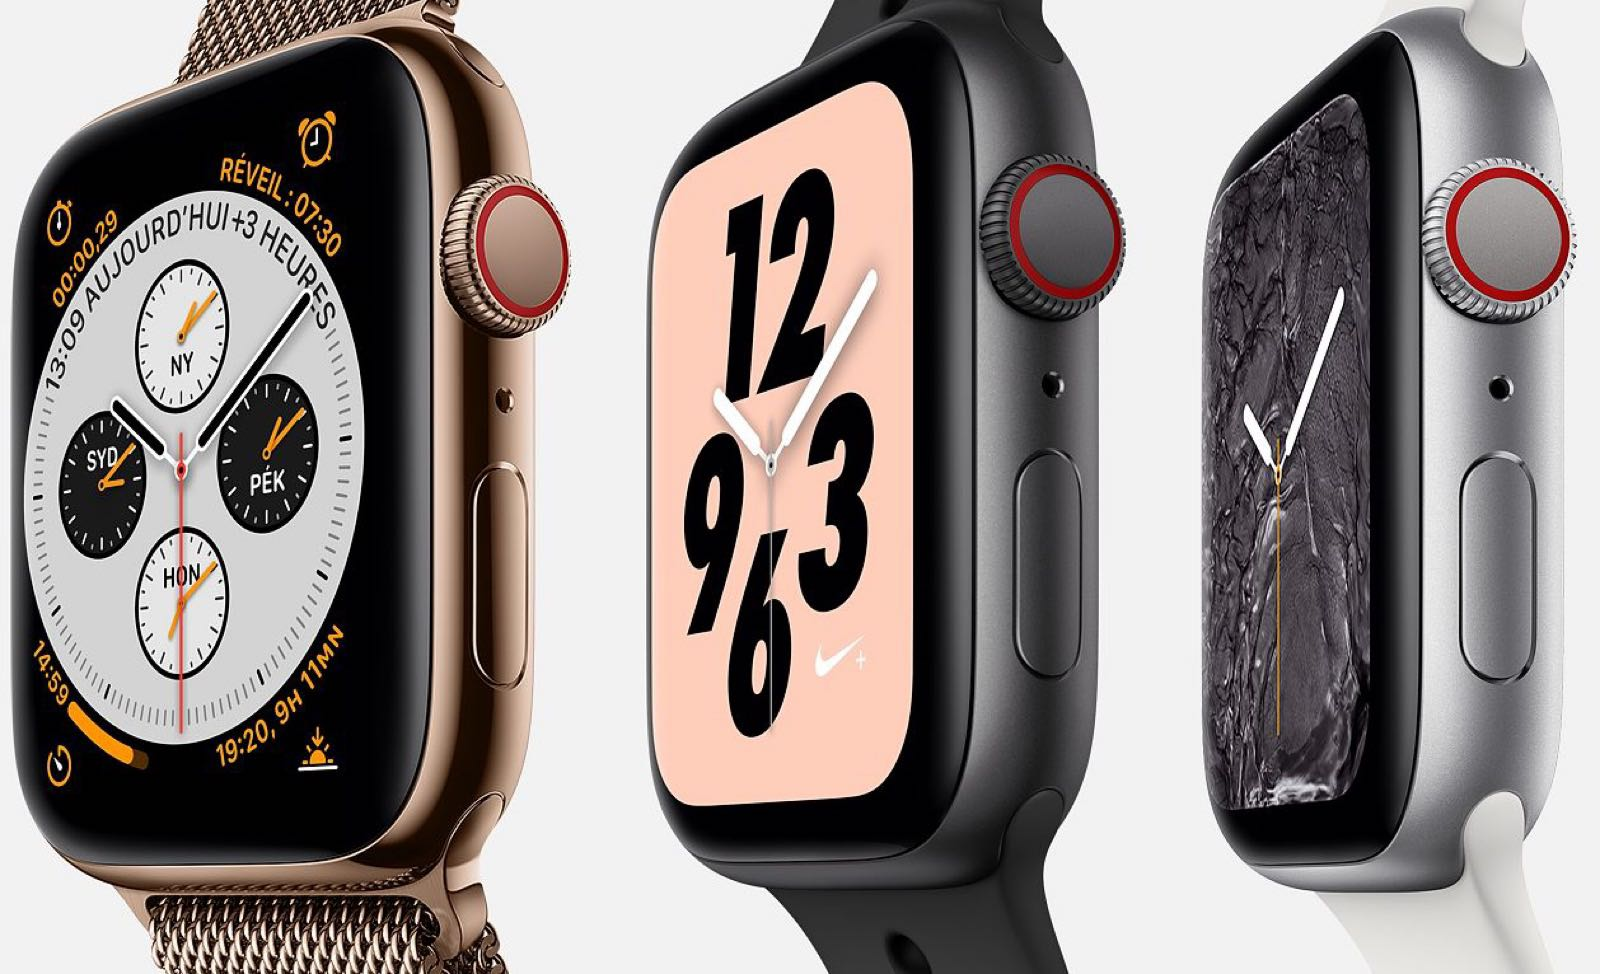 image from Non tu n'as pas besoin d'Apple Watch